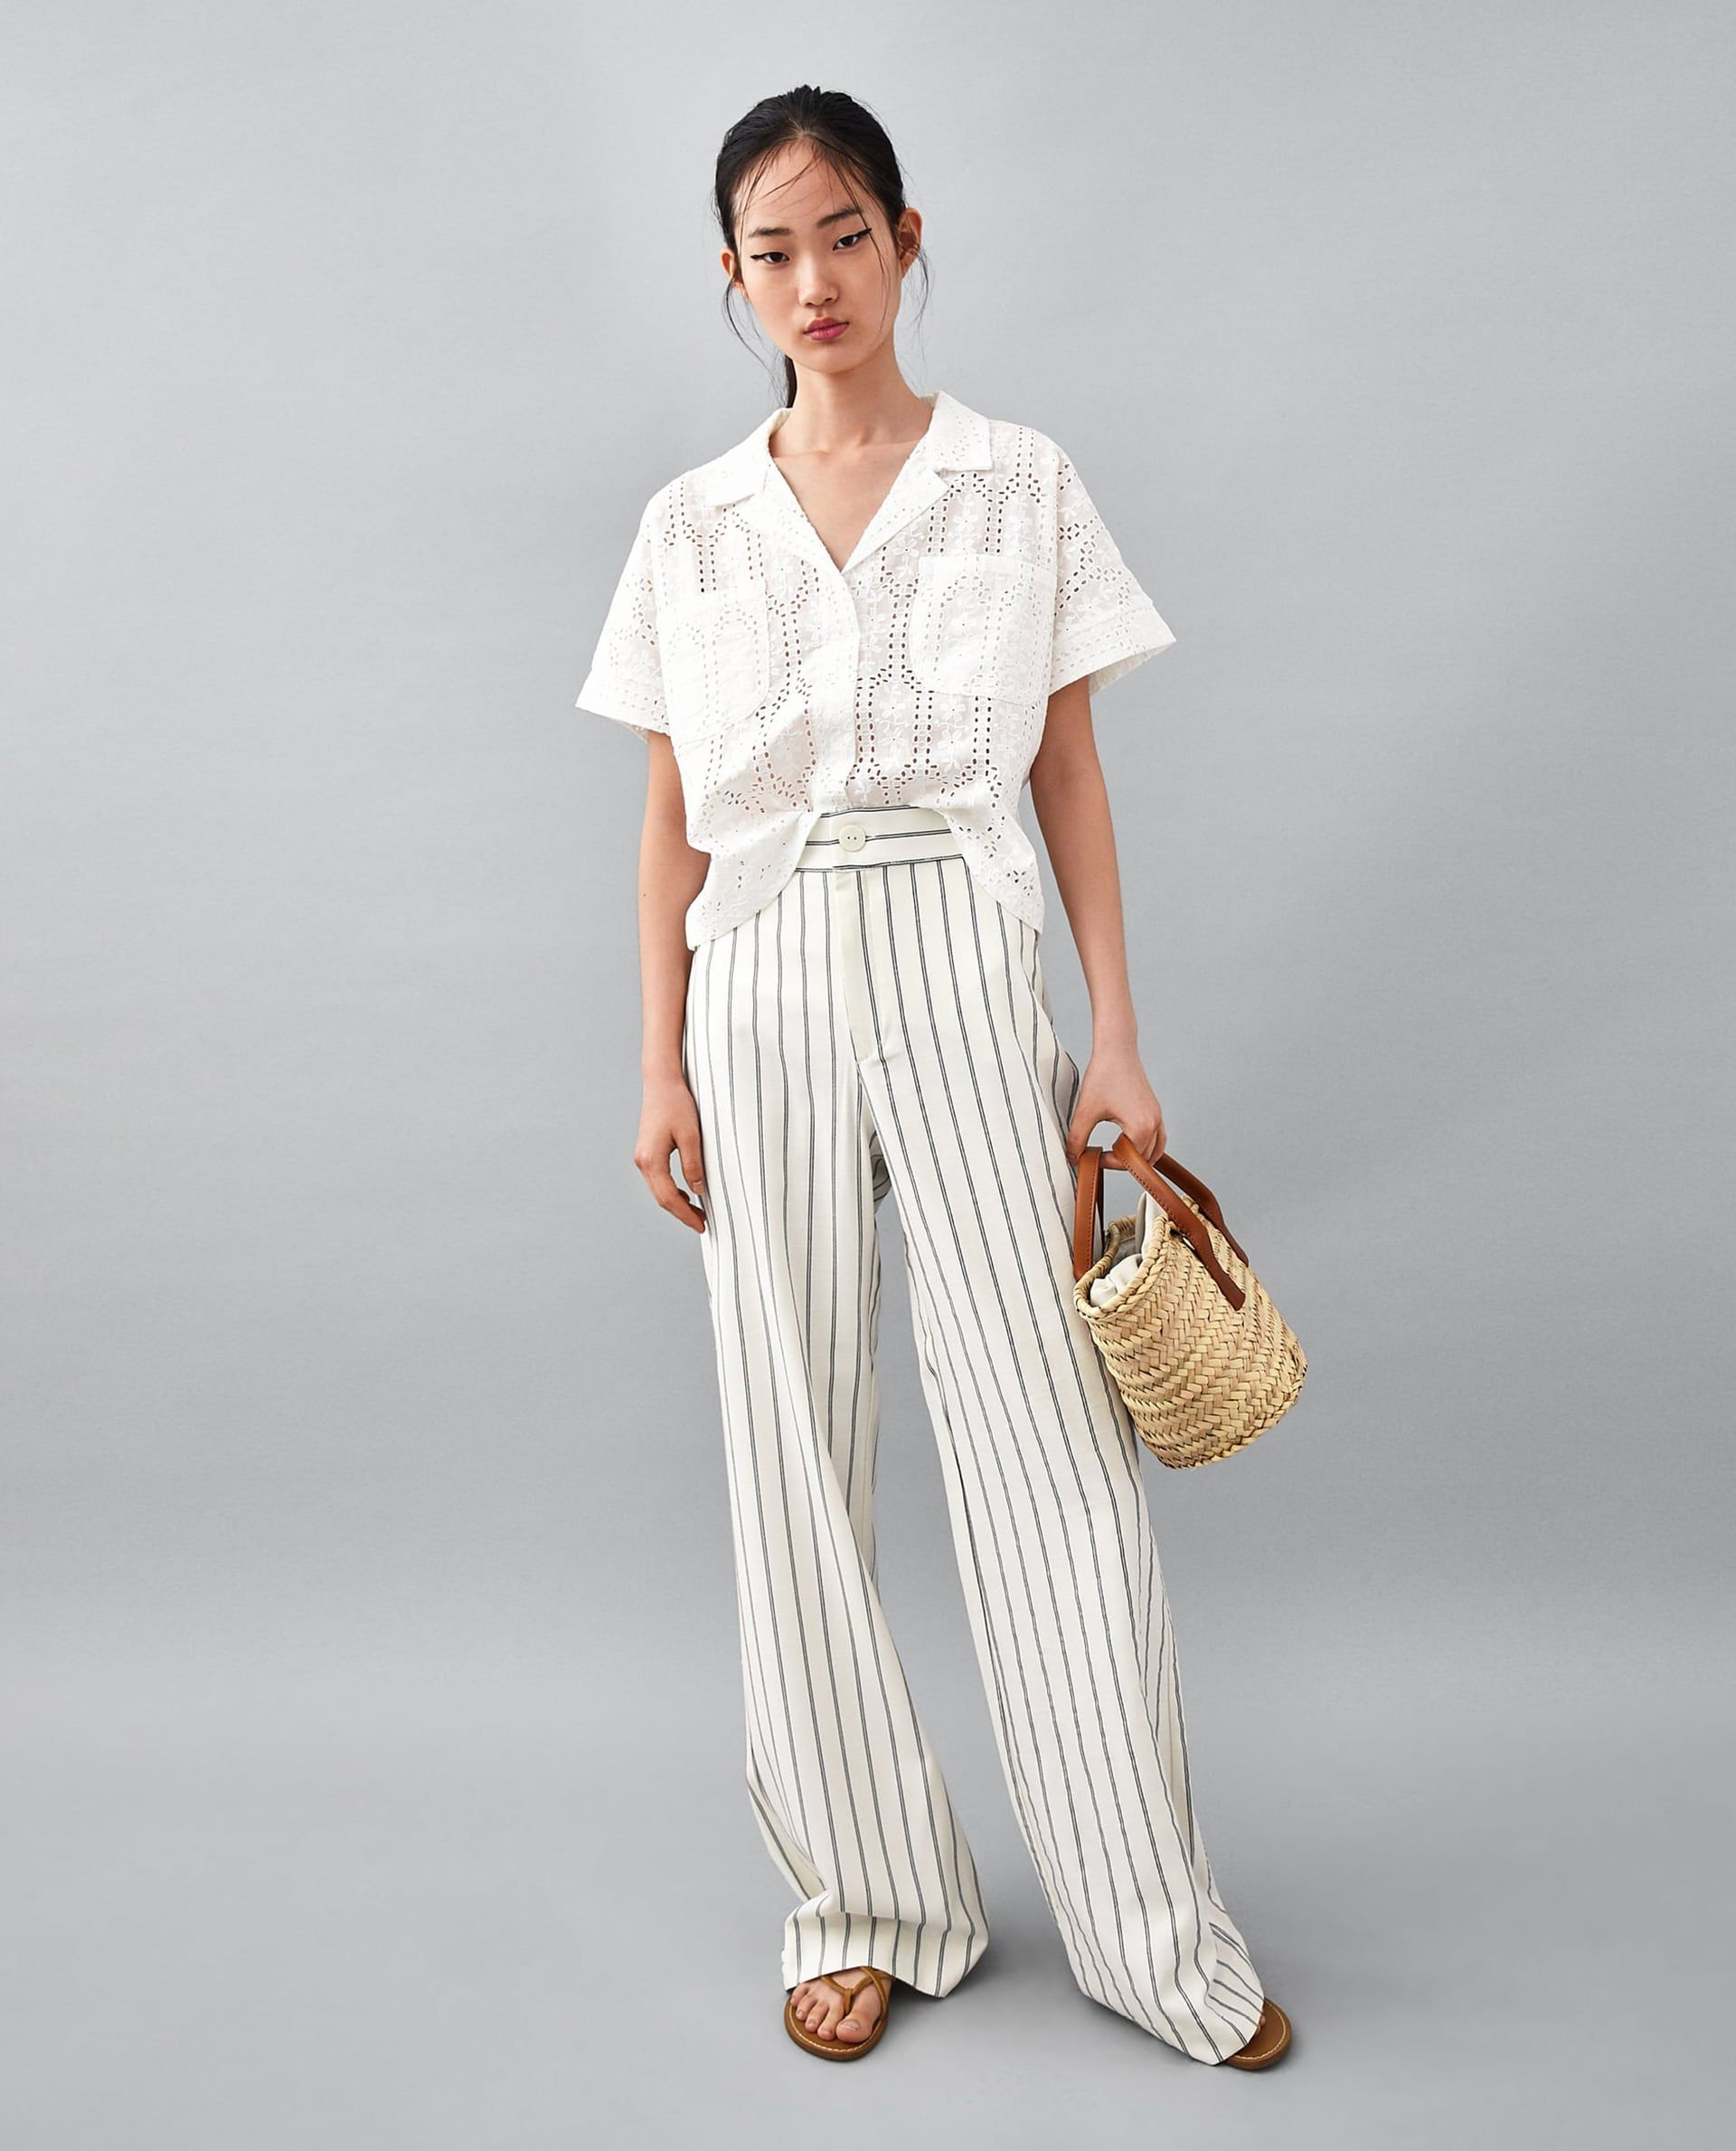 b8b7e3dd LEATHER TOTE BAG Styles P, Cutwork Embroidery, Striped Wide Leg Trousers, Wide  Leg